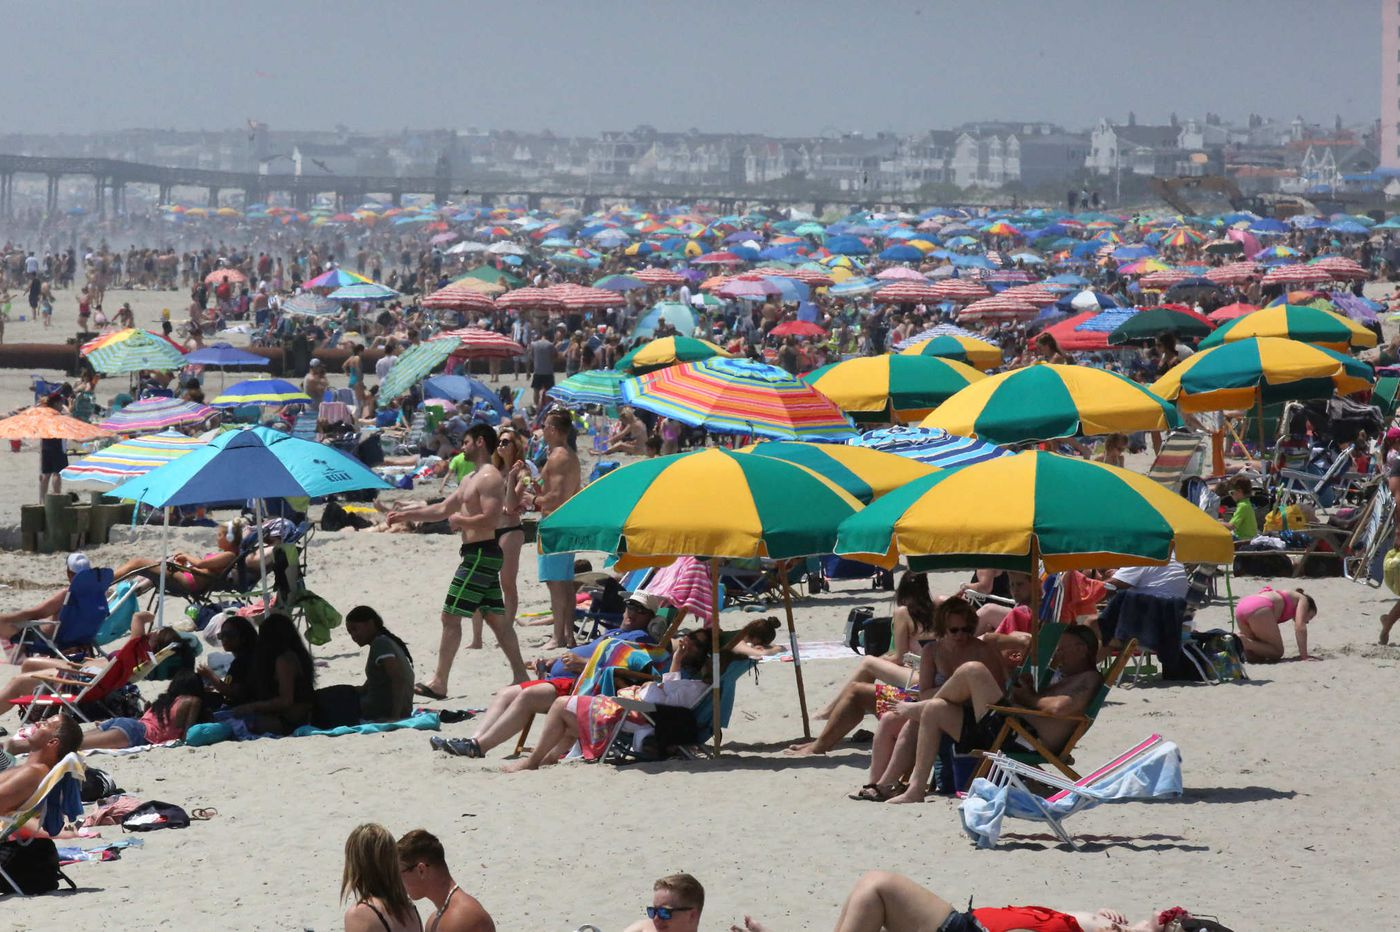 Grab your beachchair and load up the cooler: Shore series returns for a third summer